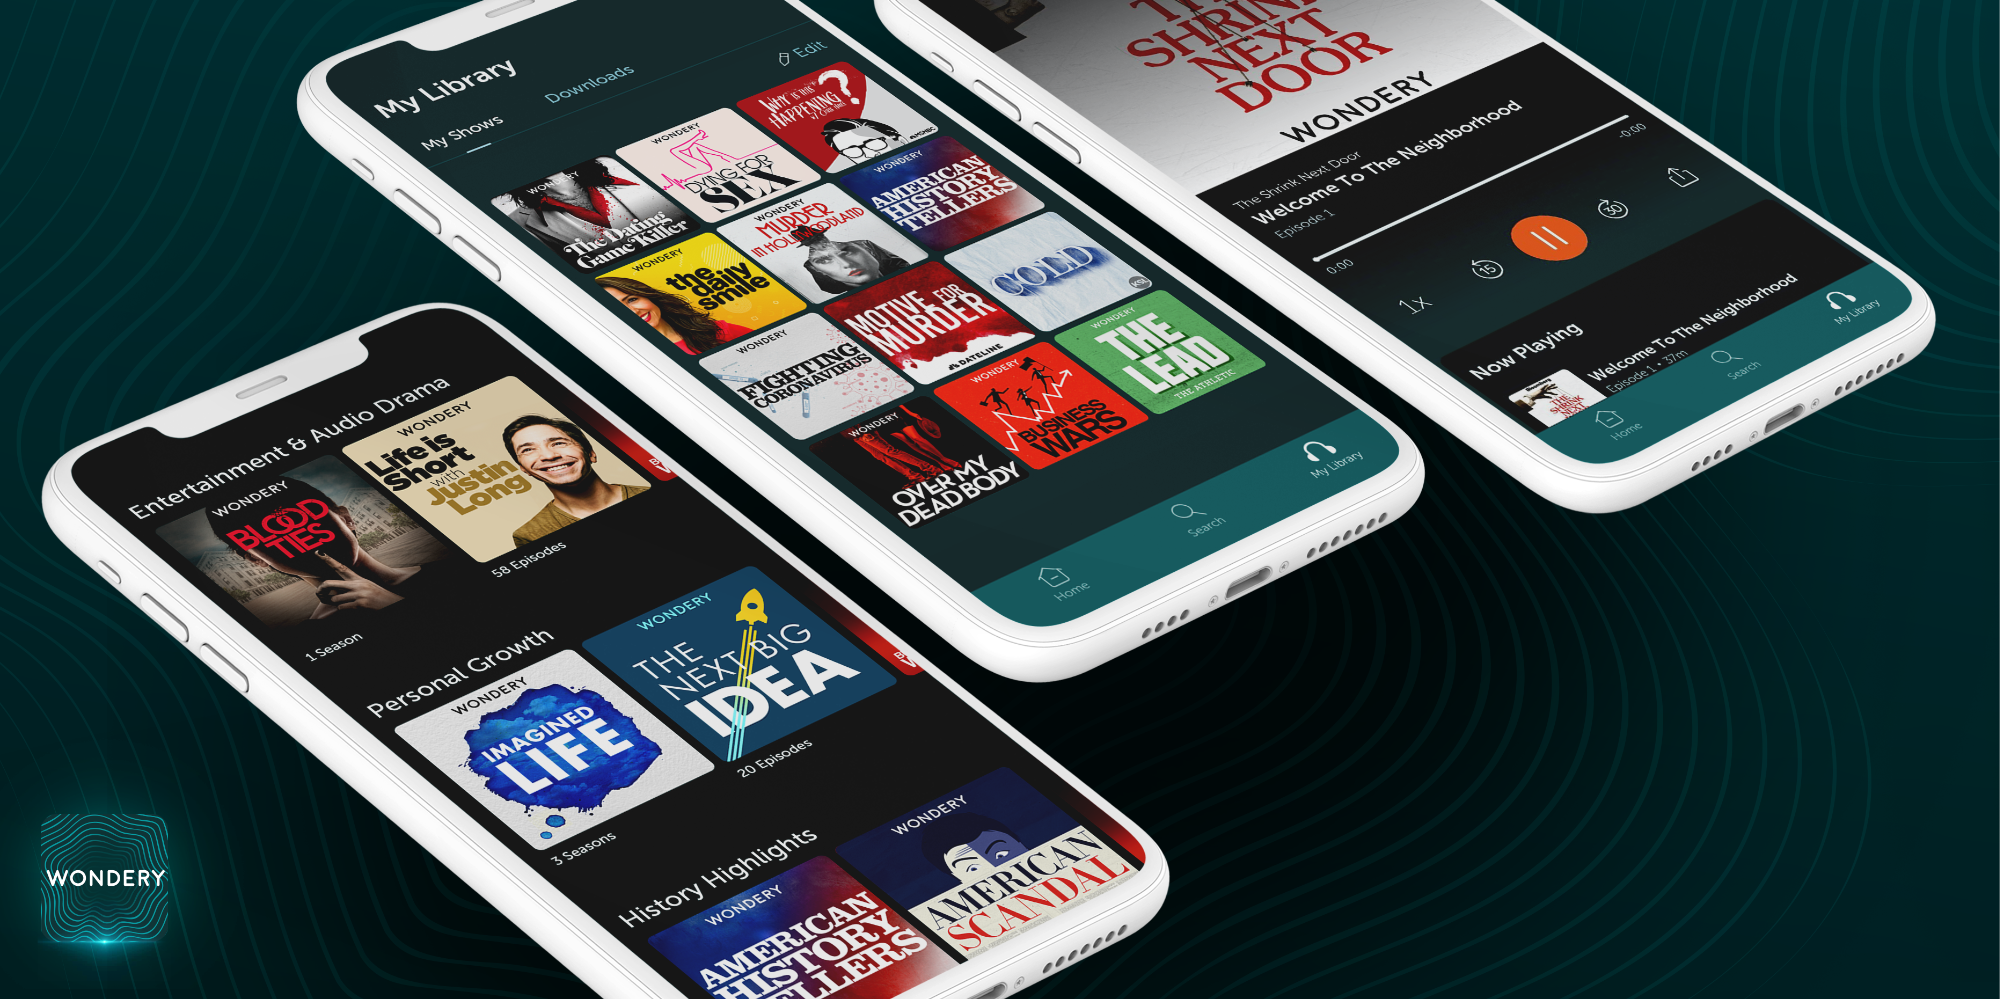 Review: Does Wondery Plus bring enough value to warrant the podcast service subscription?